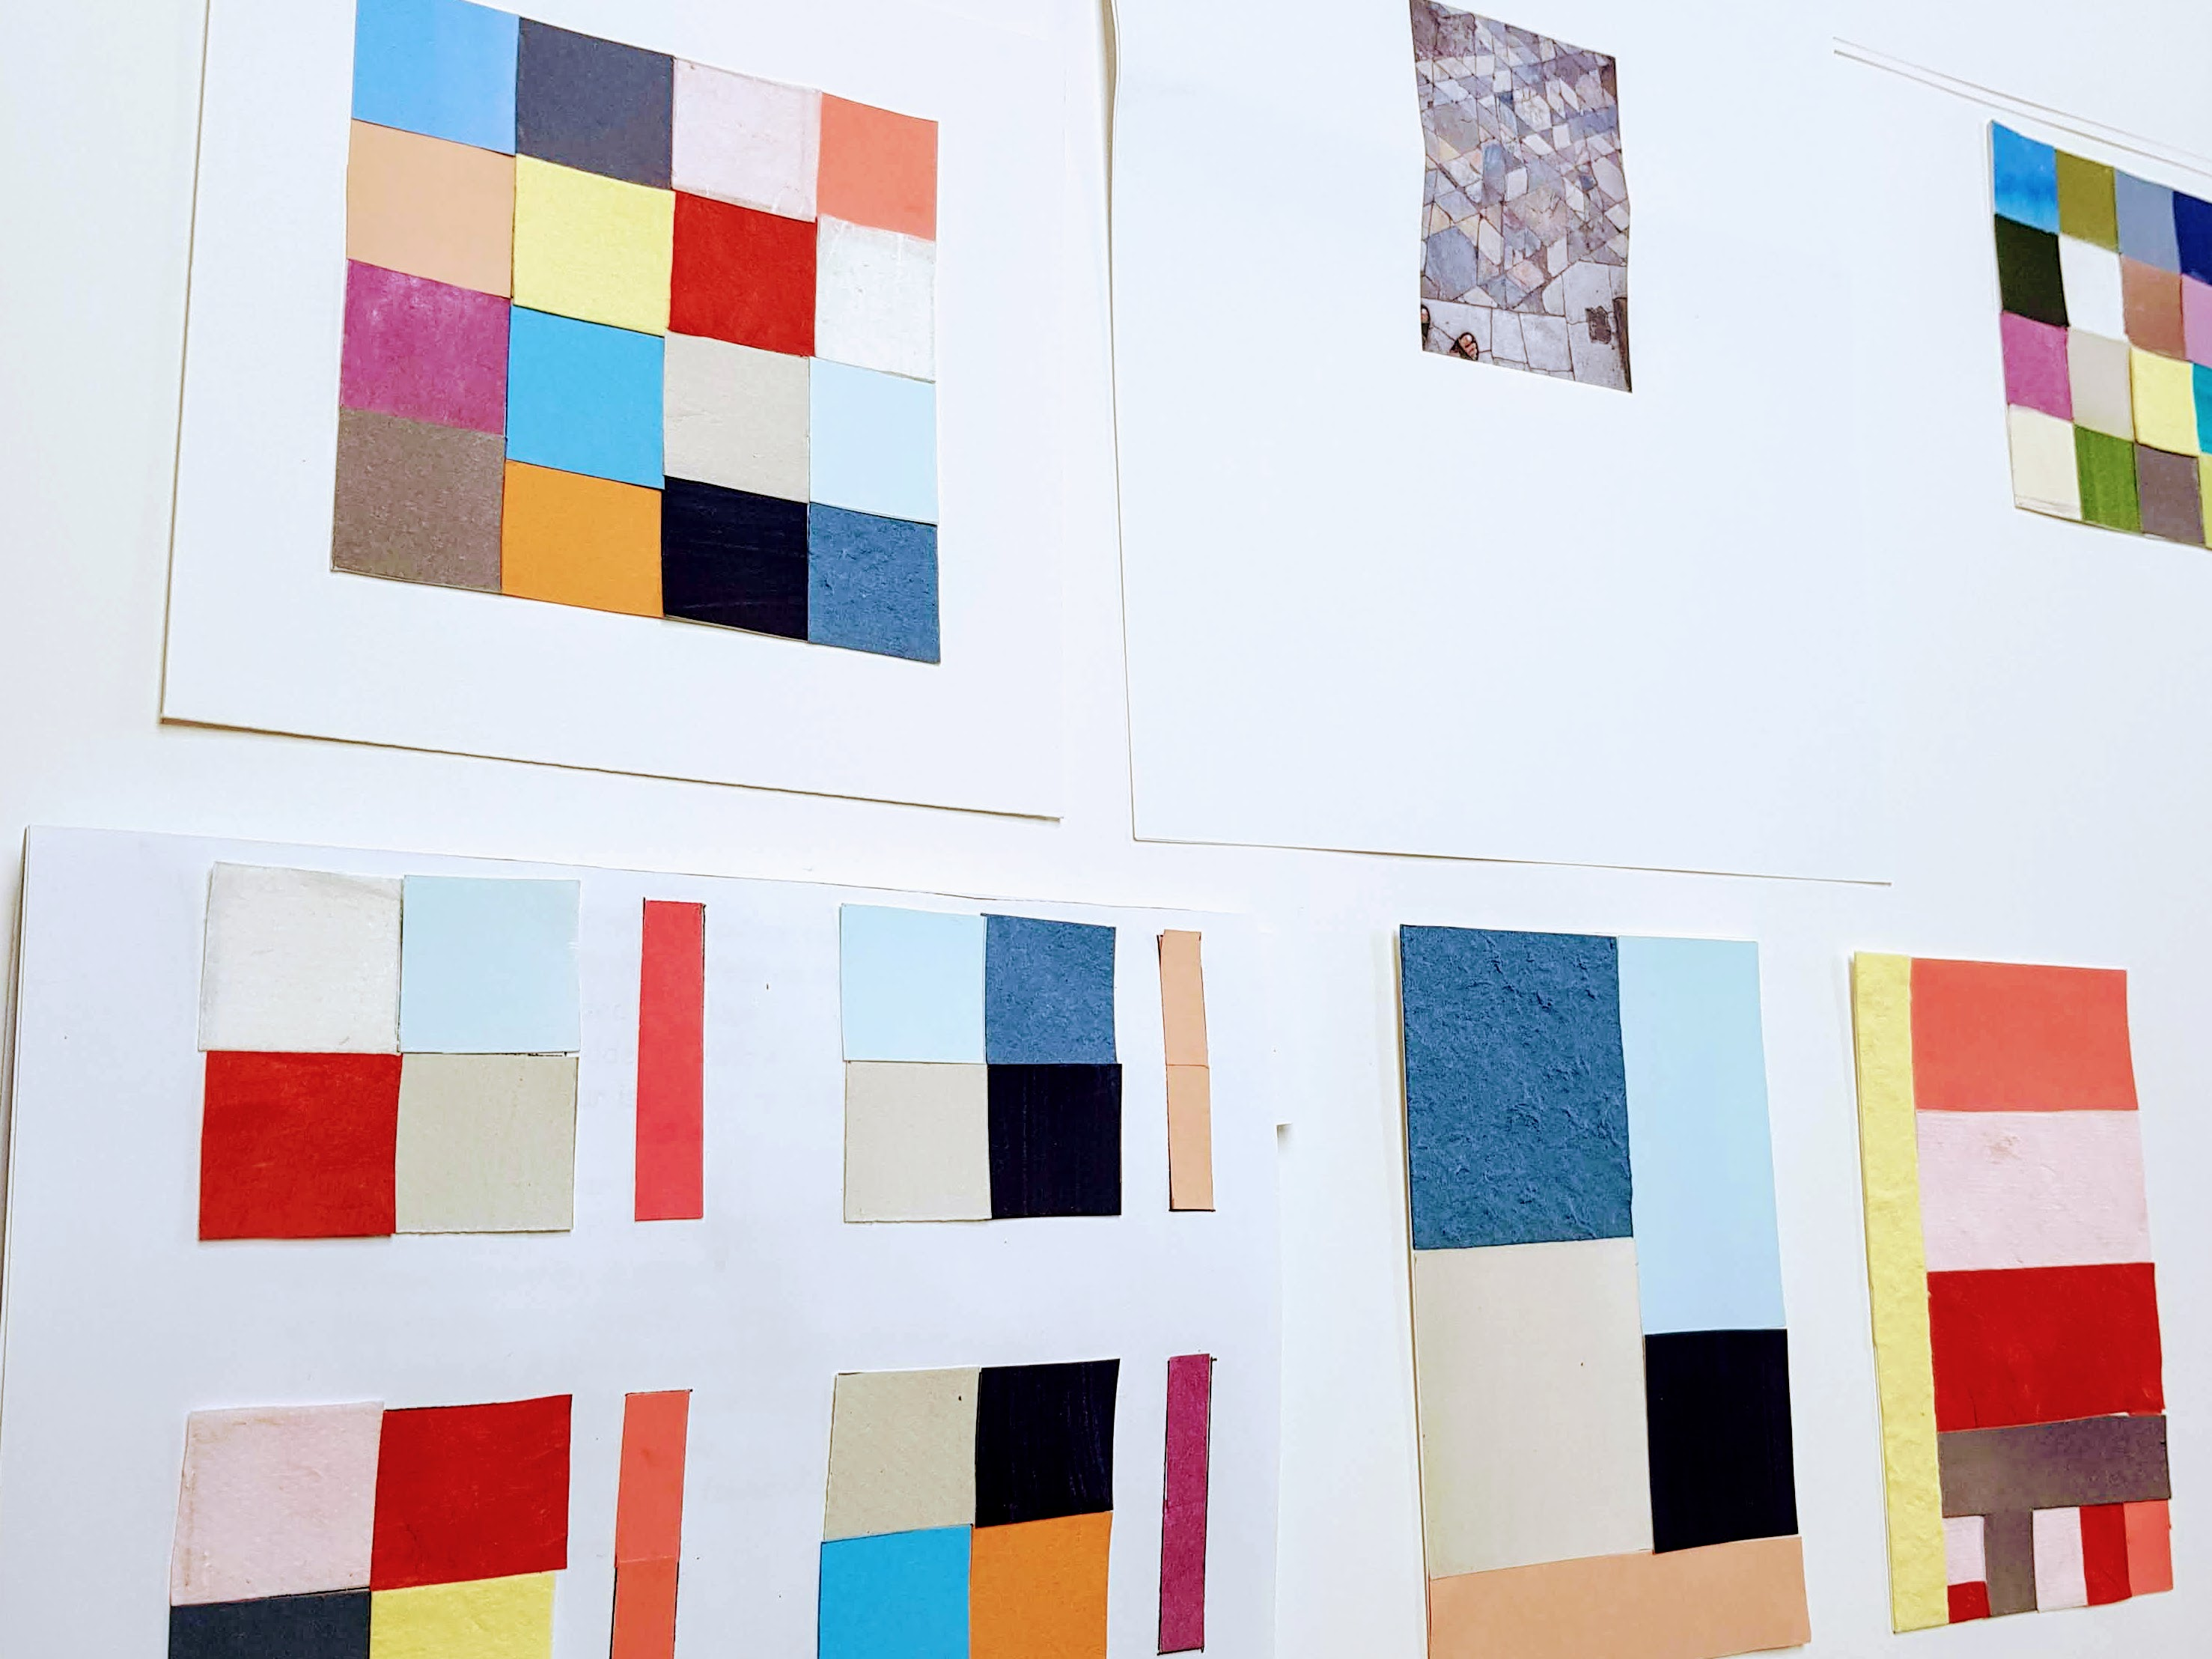 Modern quilt planning with Niki Chandler at Cambridge Art Makers Patchwork & Quilting courses